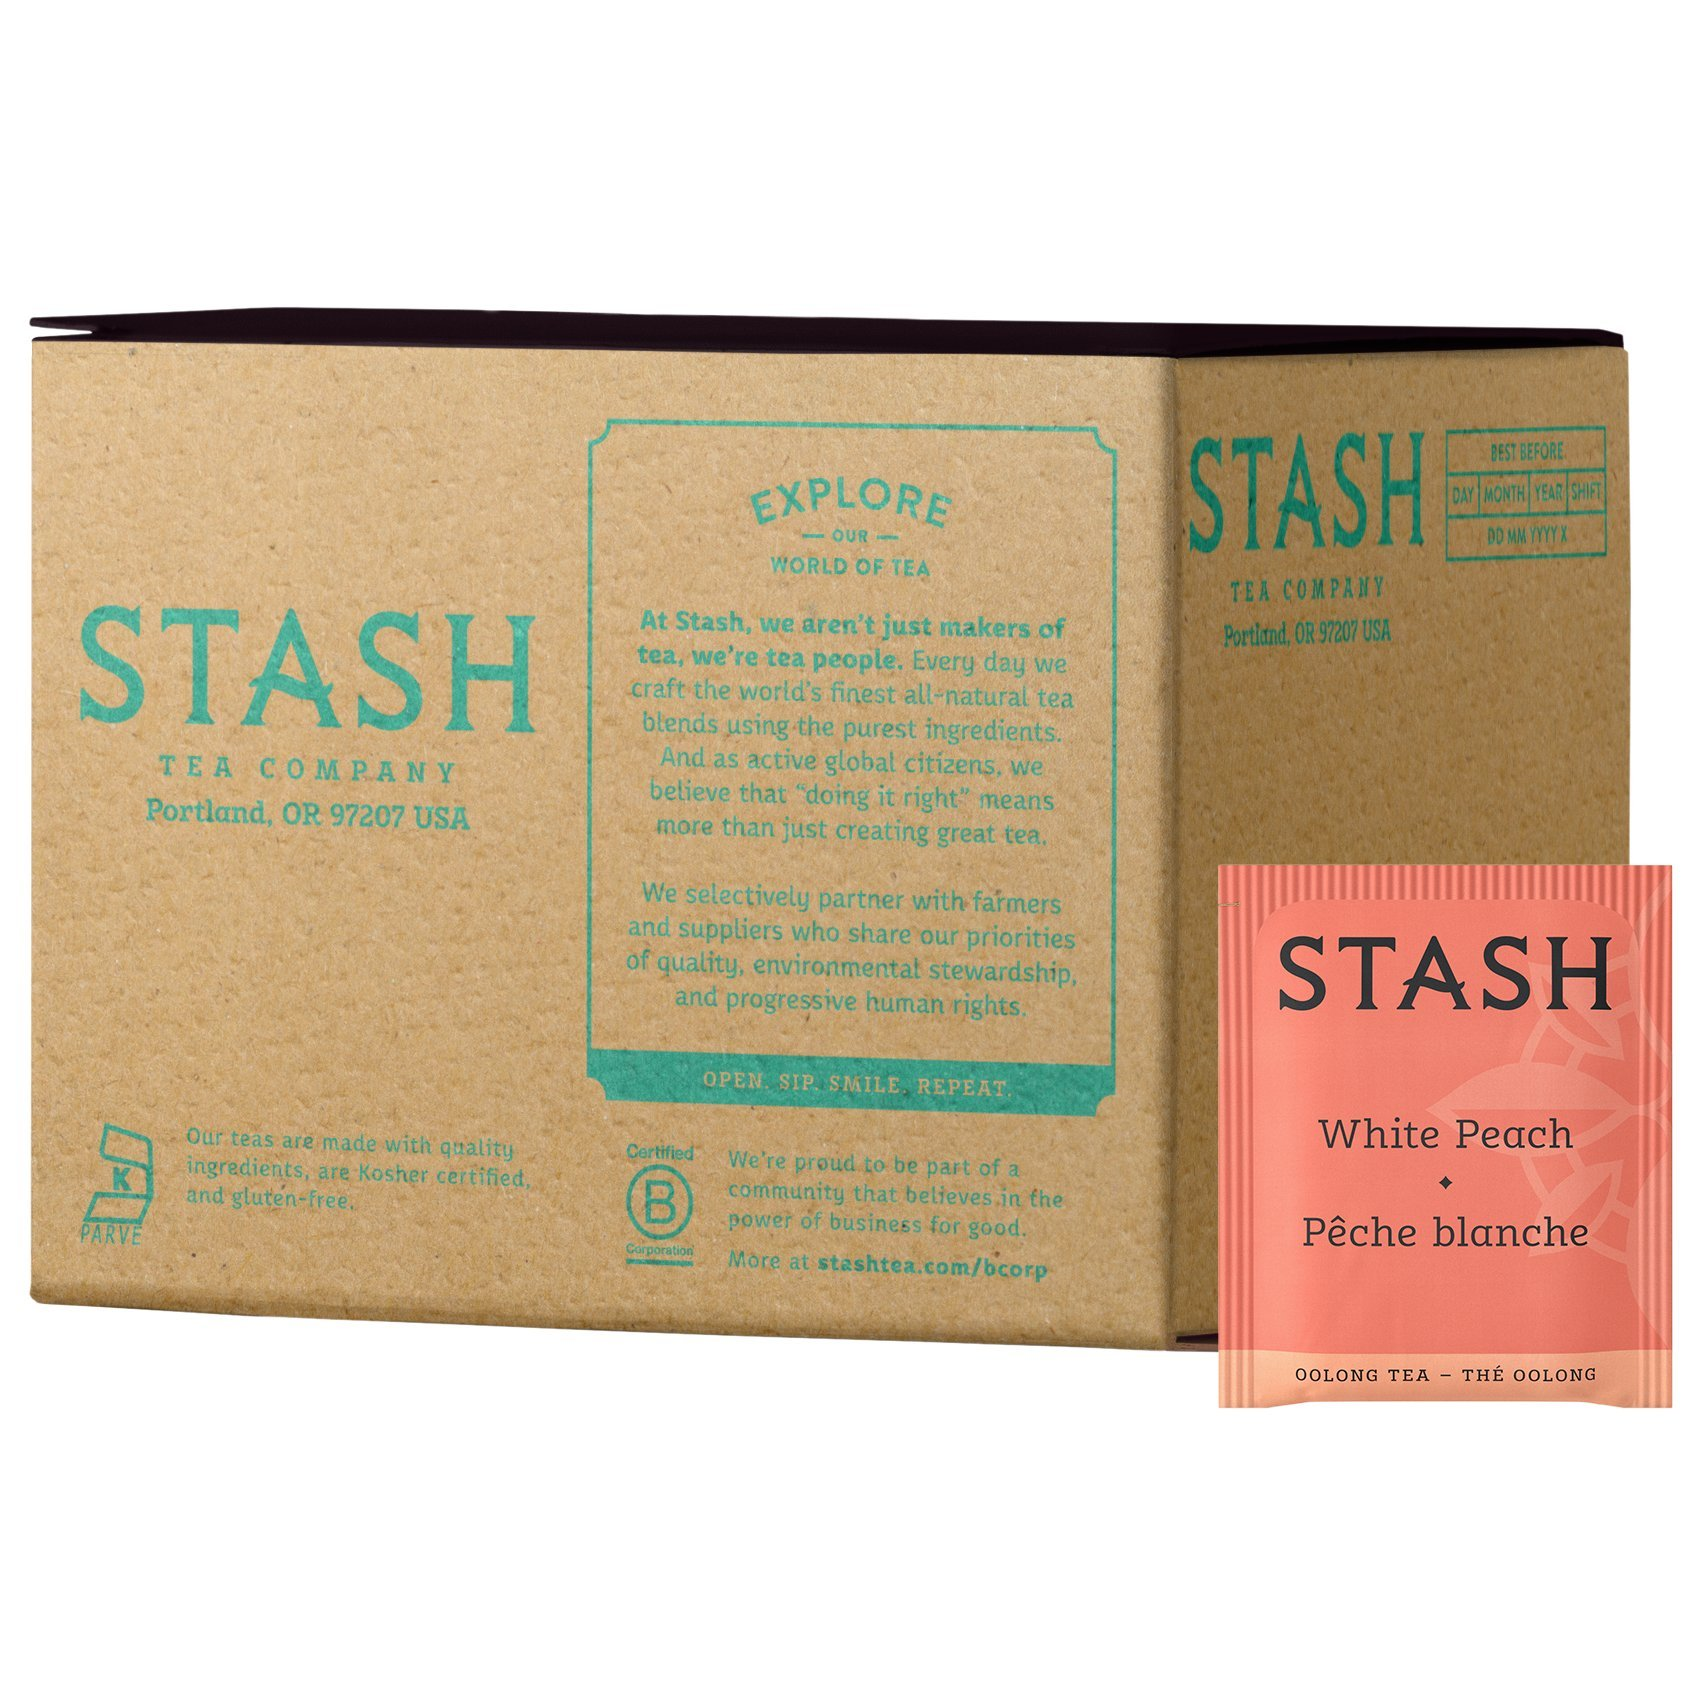 Stash Tea White Peach Oolong Tea, 100 Count Box of Tea Bags in Foil (packaging may vary) by Stash Tea (Image #1)